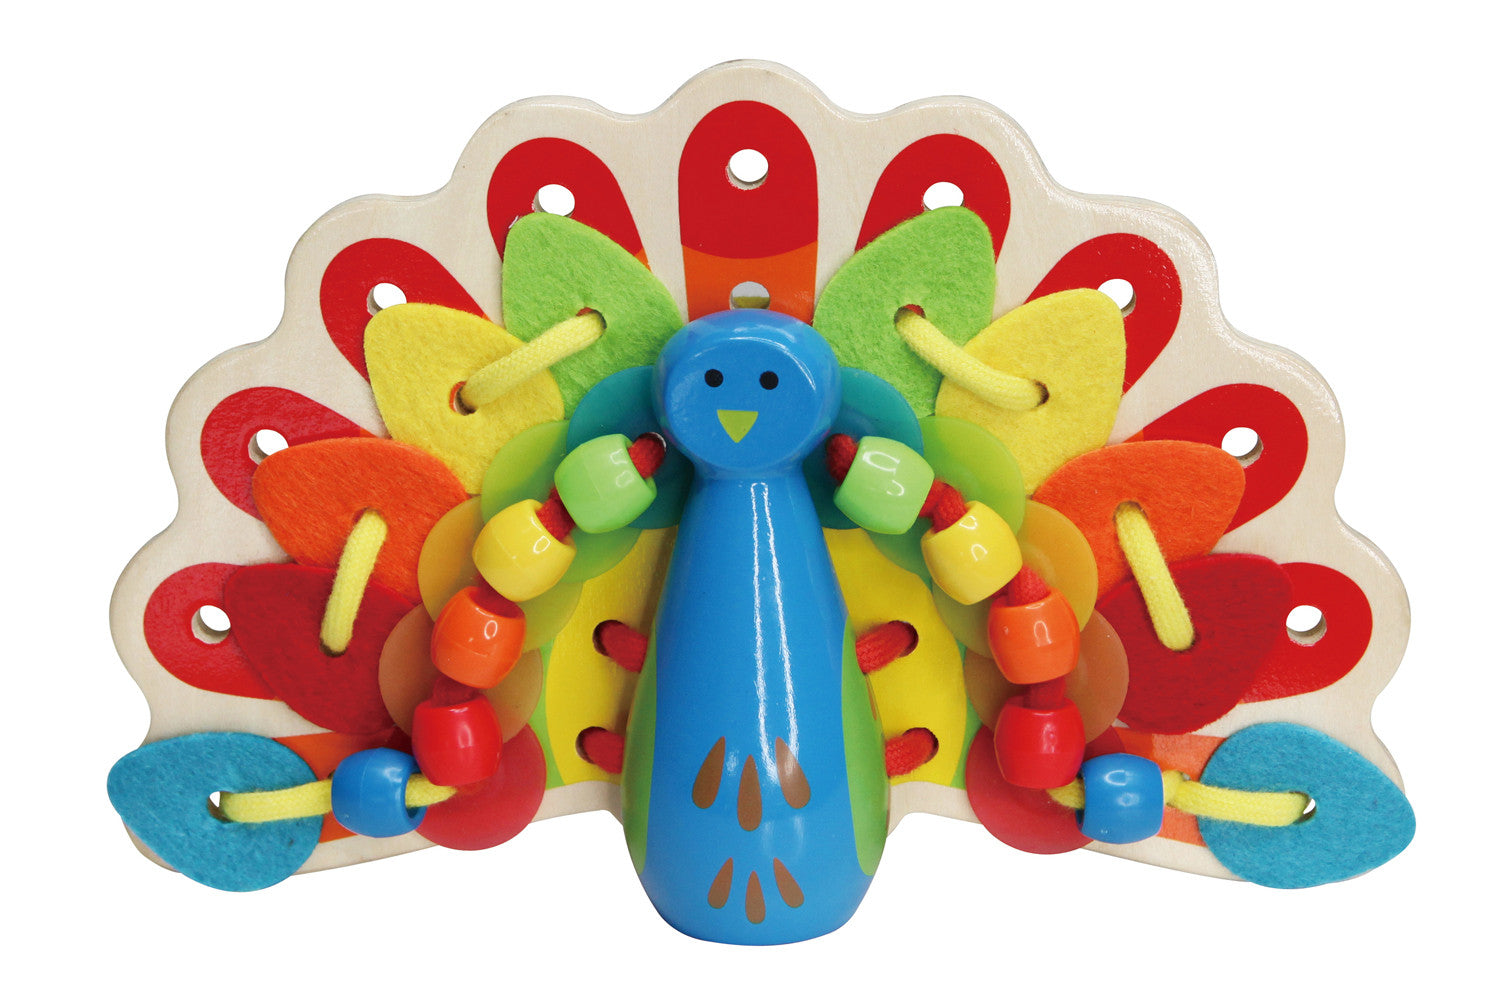 Hape Wooden Toy - Educational Lacing Peacock - How I Wonder.co.uk - 1